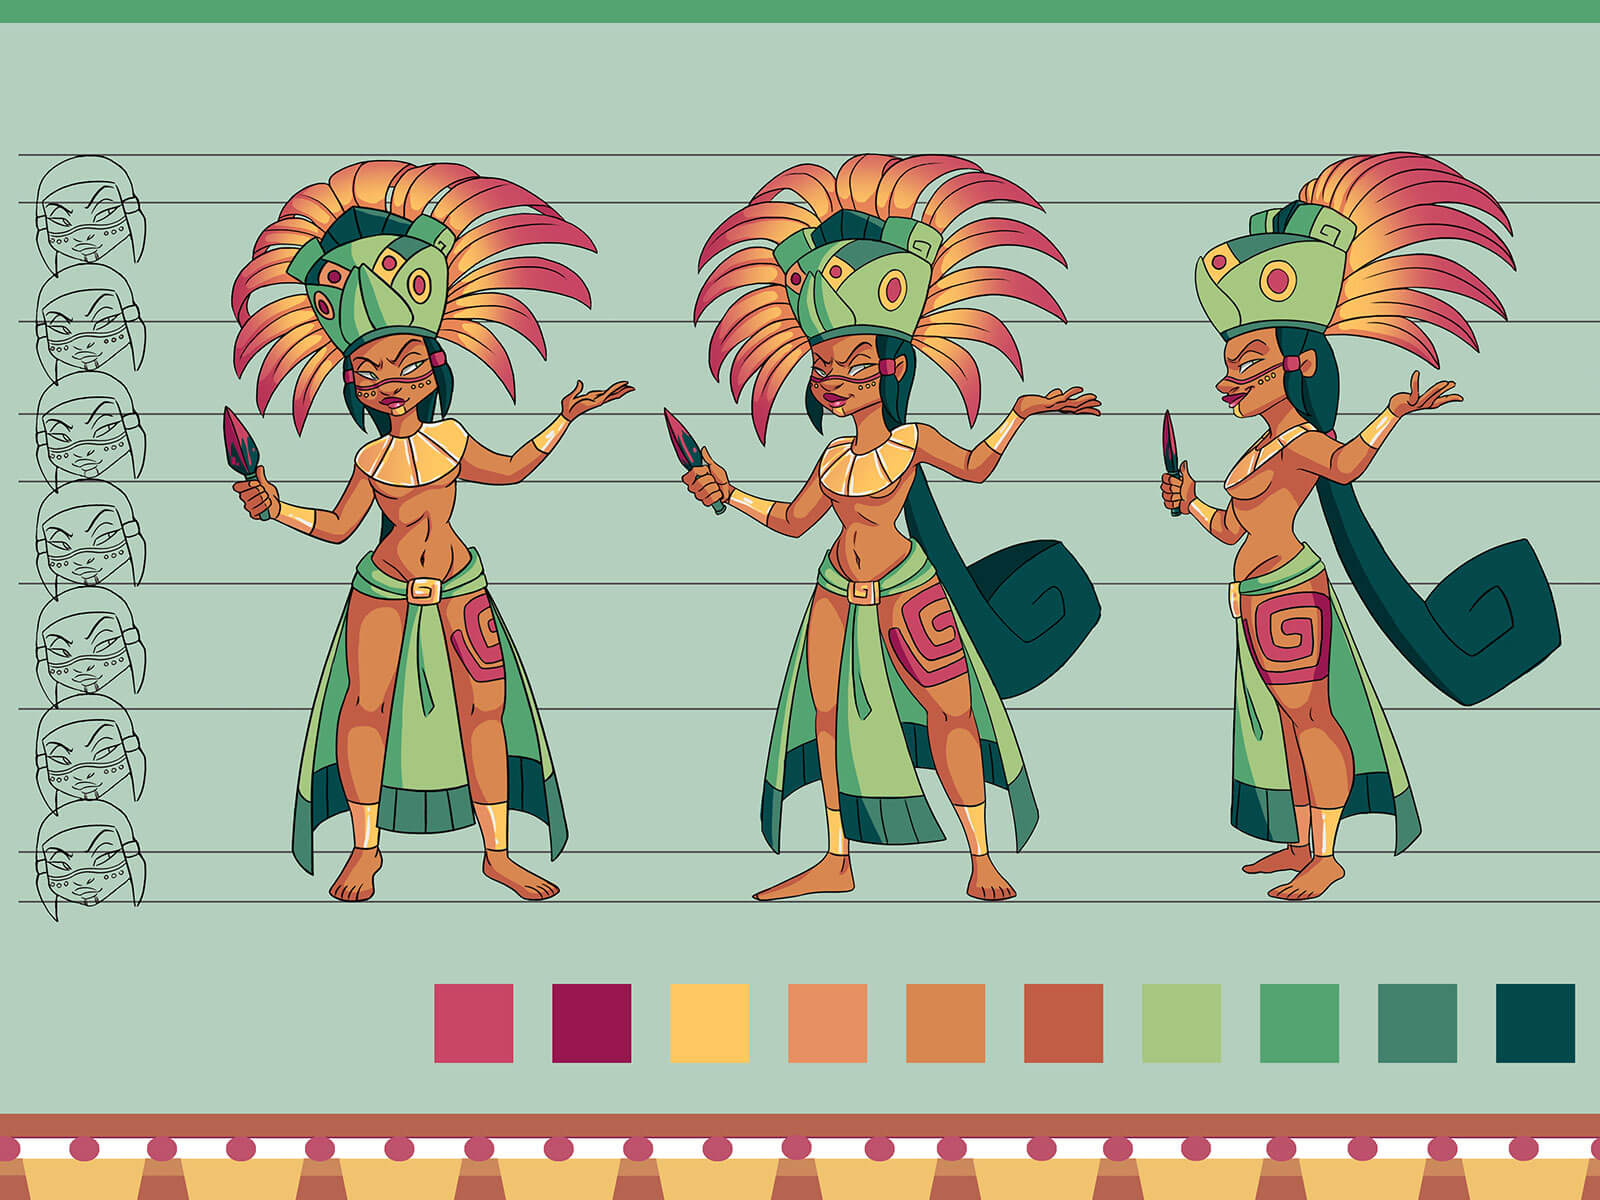 Turnaround views of a woman in ancient Mesoamerican garb holding a bloody dagger and wearing a feathered headdress.